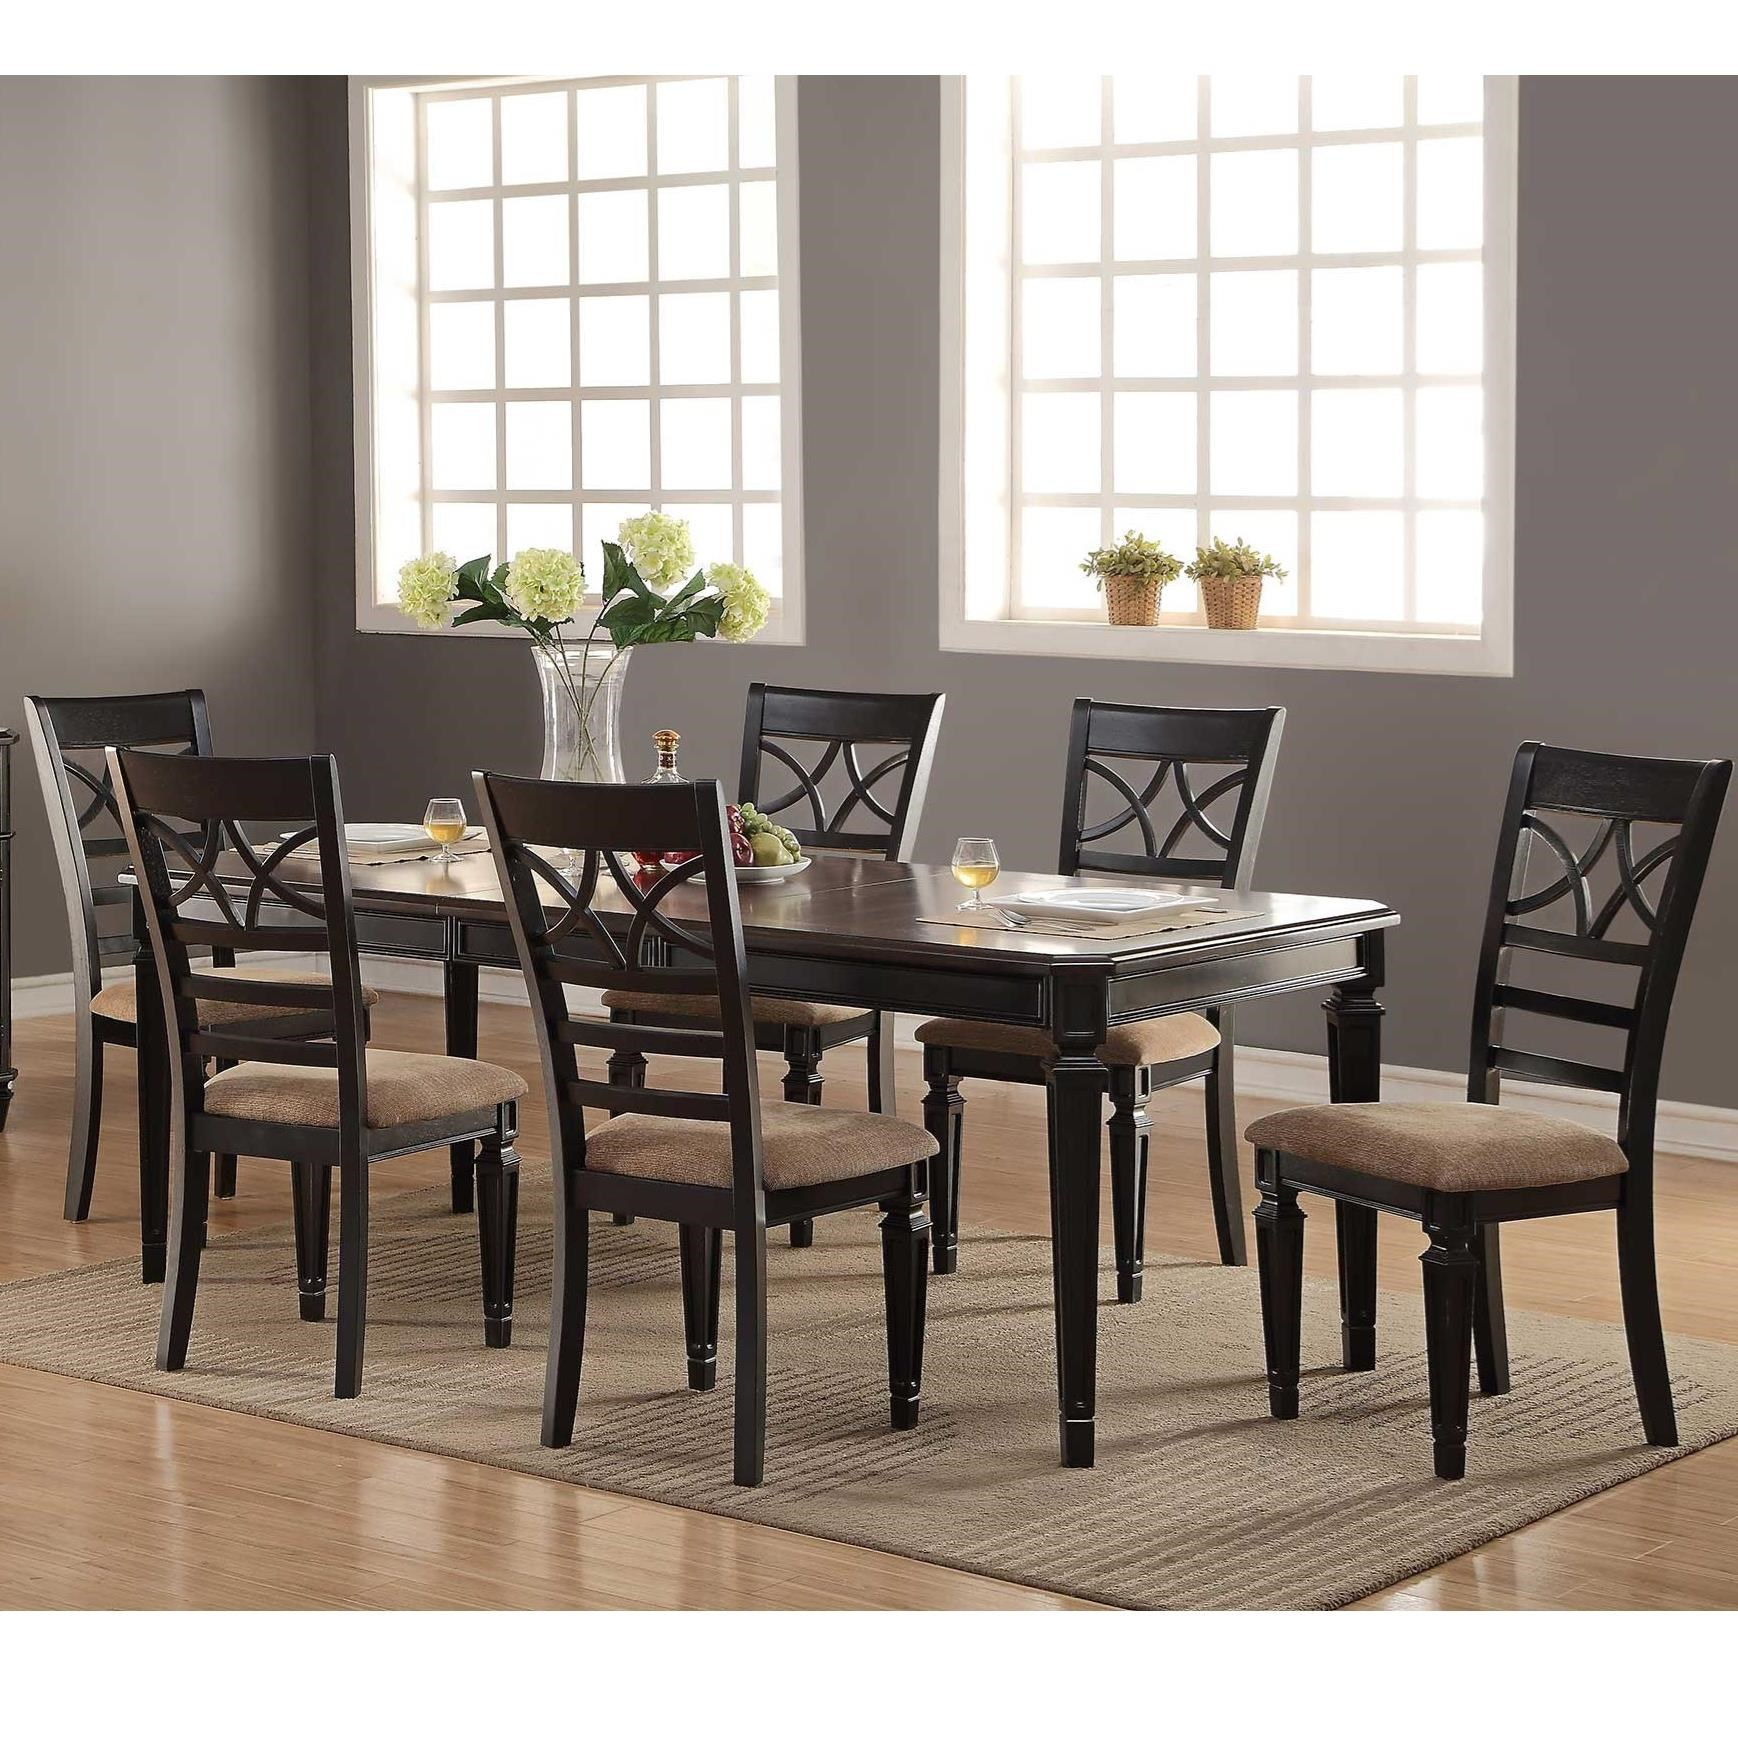 Arlington 7 Piece Dining Set by Winners Only at Crowley Furniture & Mattress